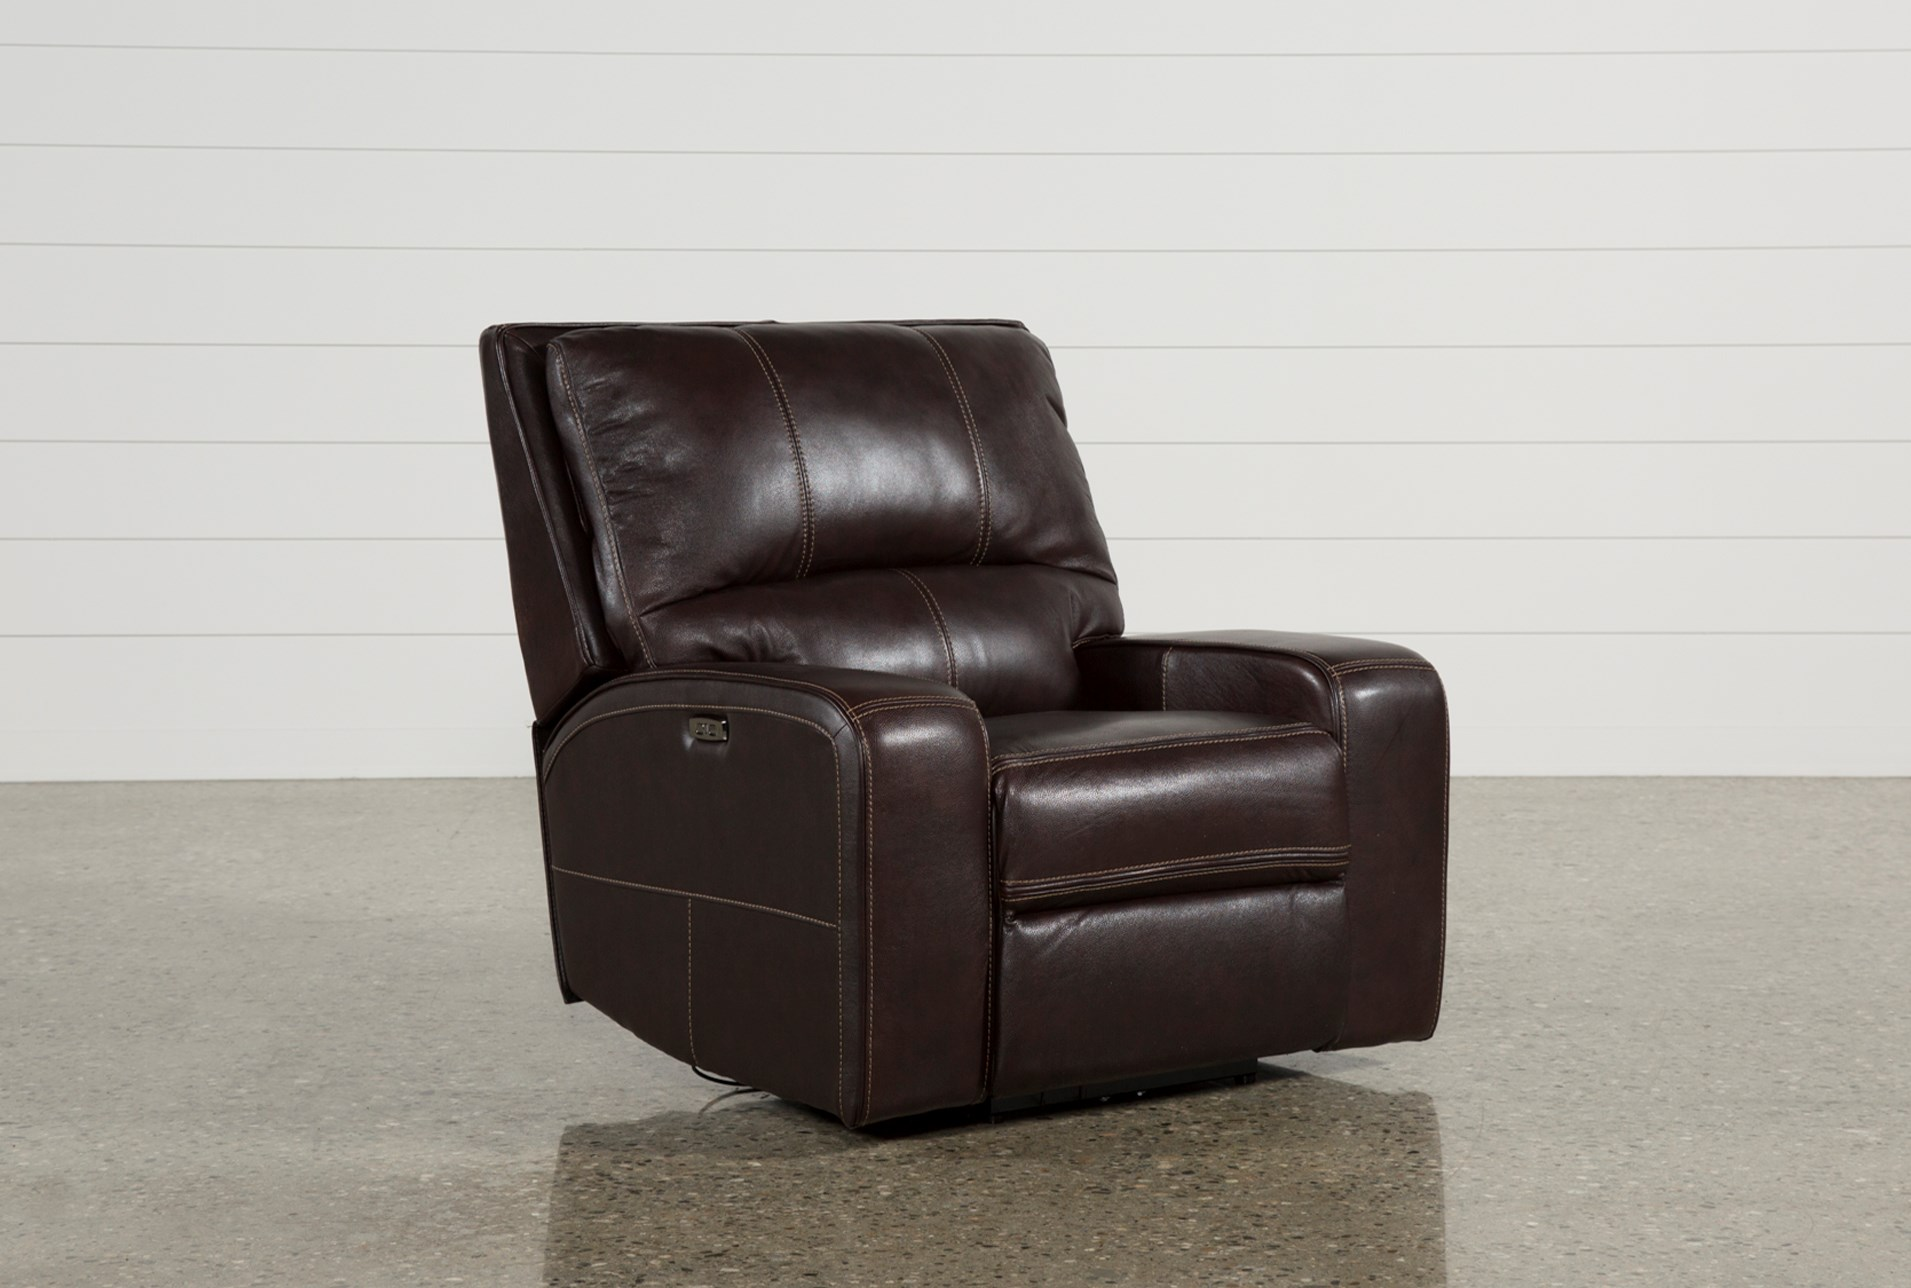 recliner best are legs shorter for designed recliners your there adult